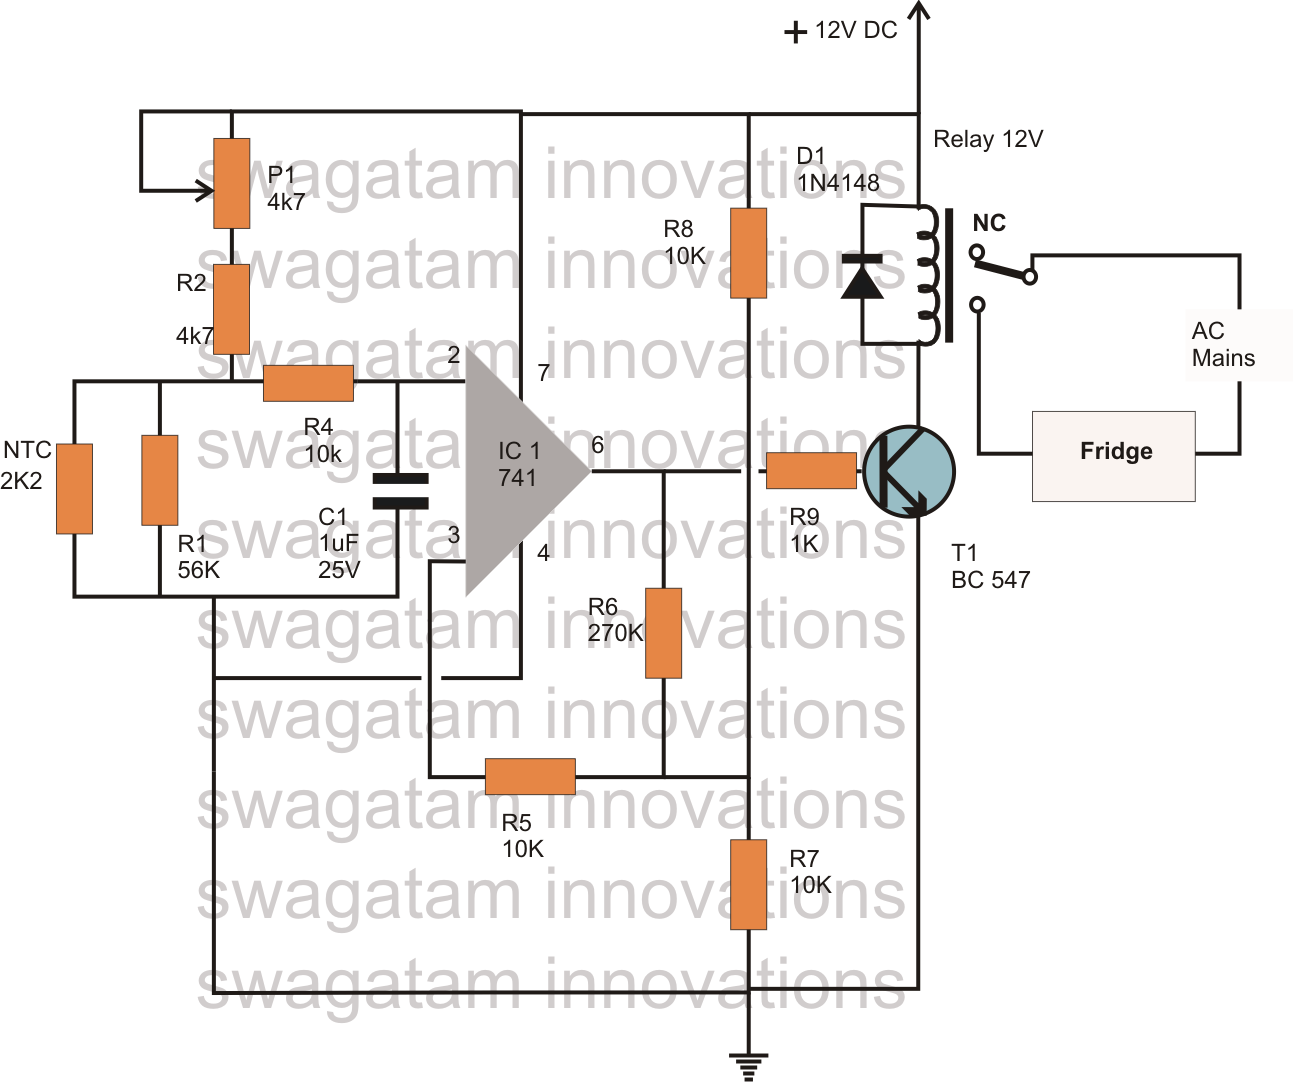 small resolution of diy incubator wiring makers frigidaire refrigerator defrost thermostat diagram ge refrigerator thermostat replacement